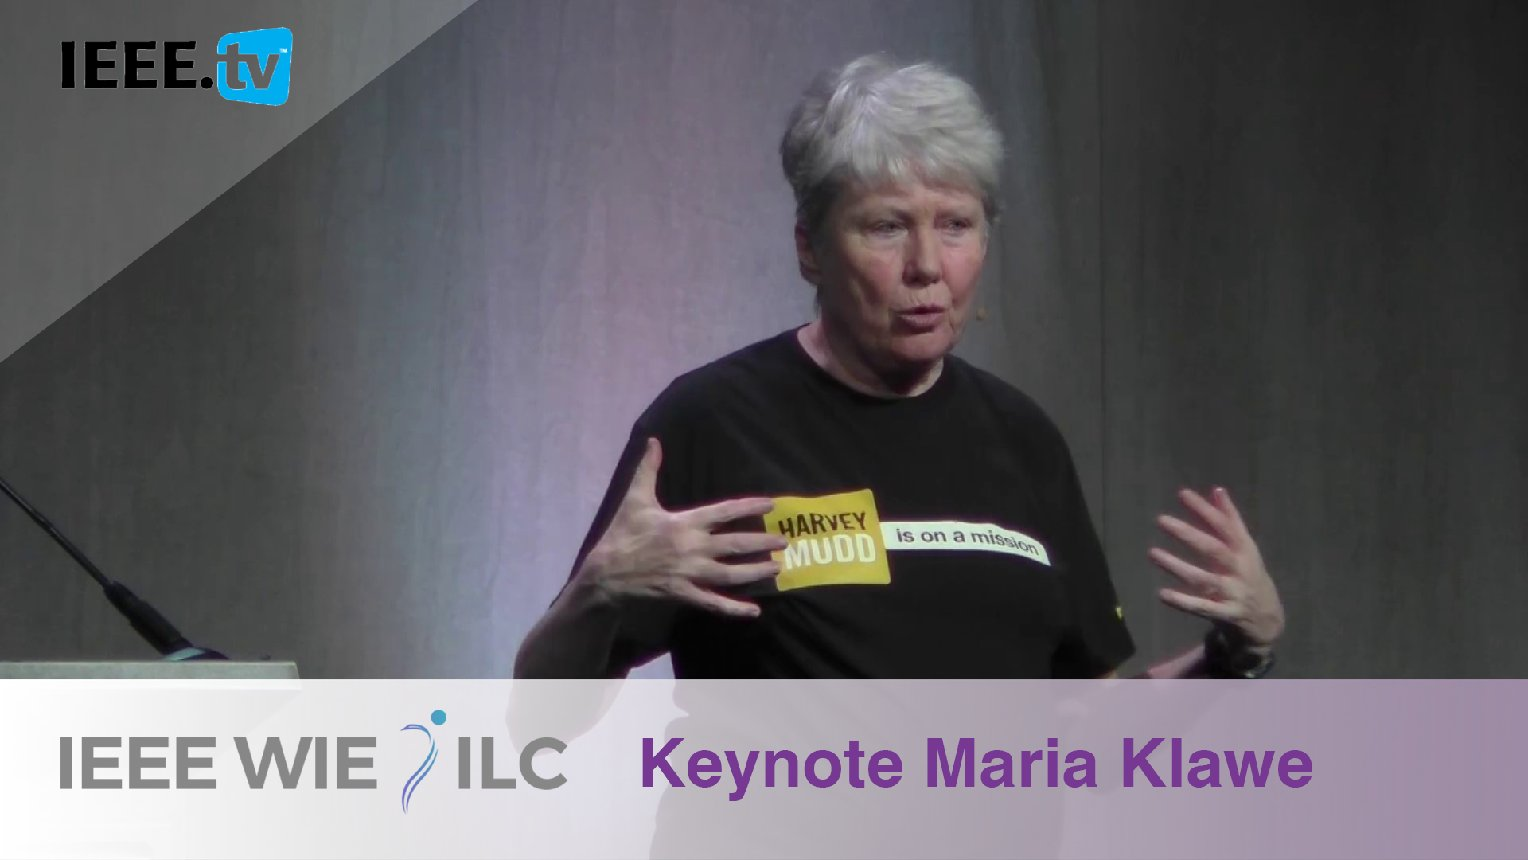 Broadening Participation in Computing and Empowering Female Leaders with Maria Klawe - IEEE WIE ILC 2017